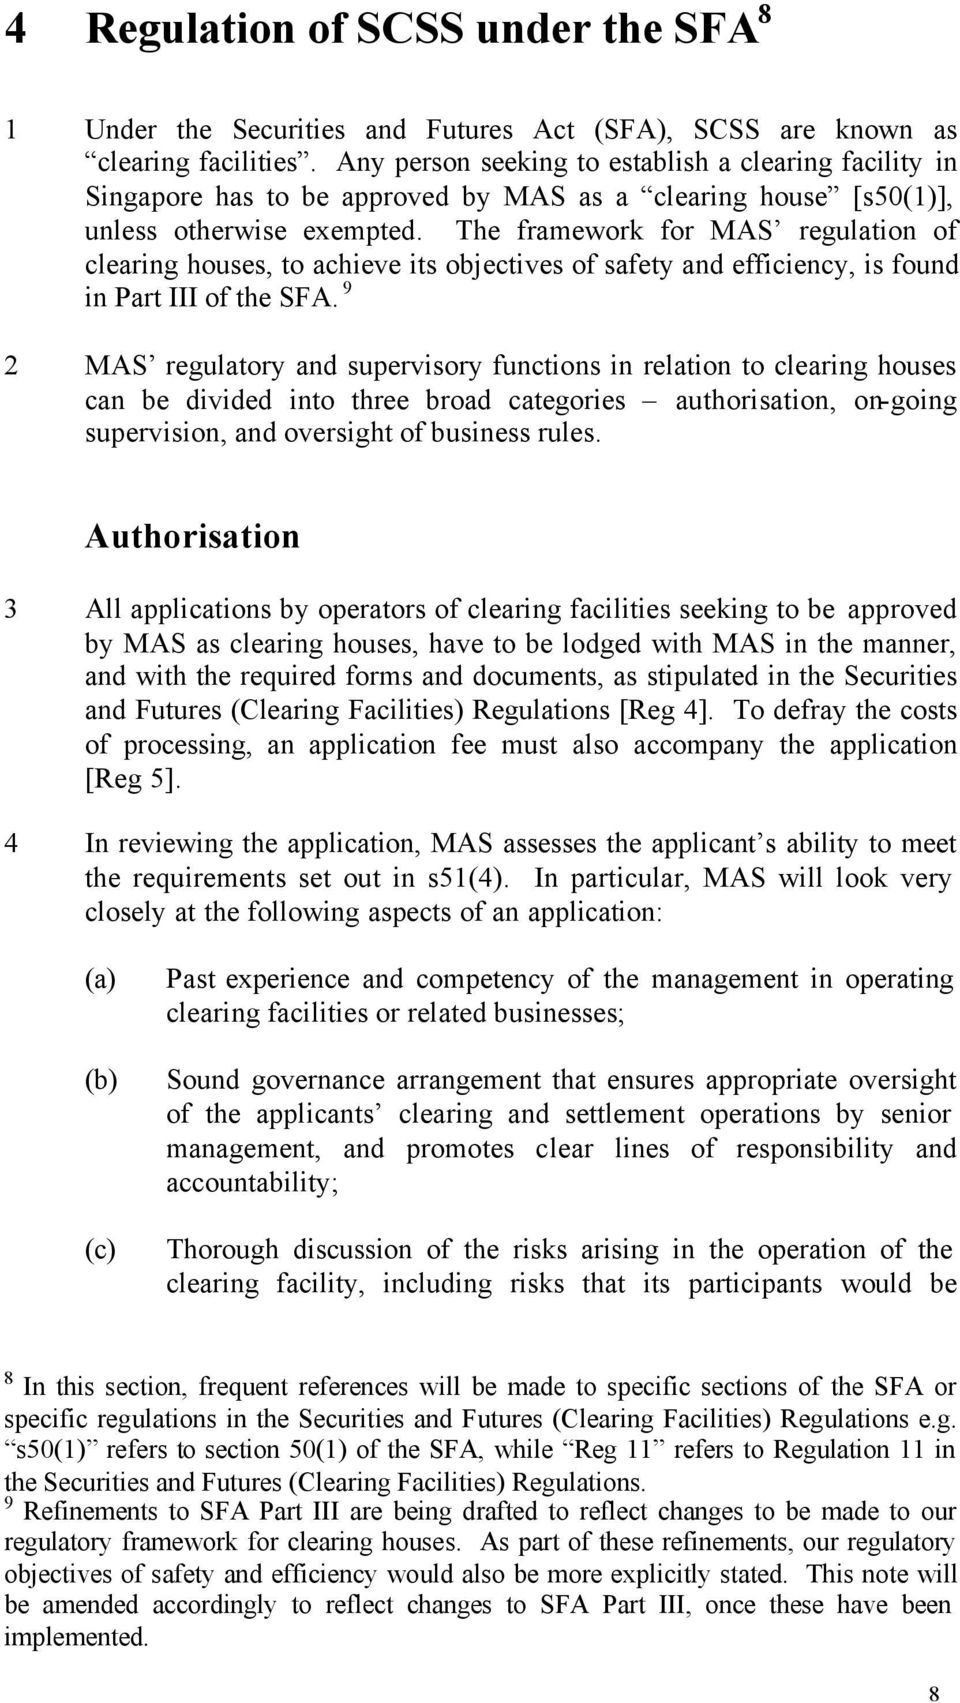 The framework for MAS regulation of clearing houses, to achieve its objectives of safety and efficiency, is found in Part III of the SFA.